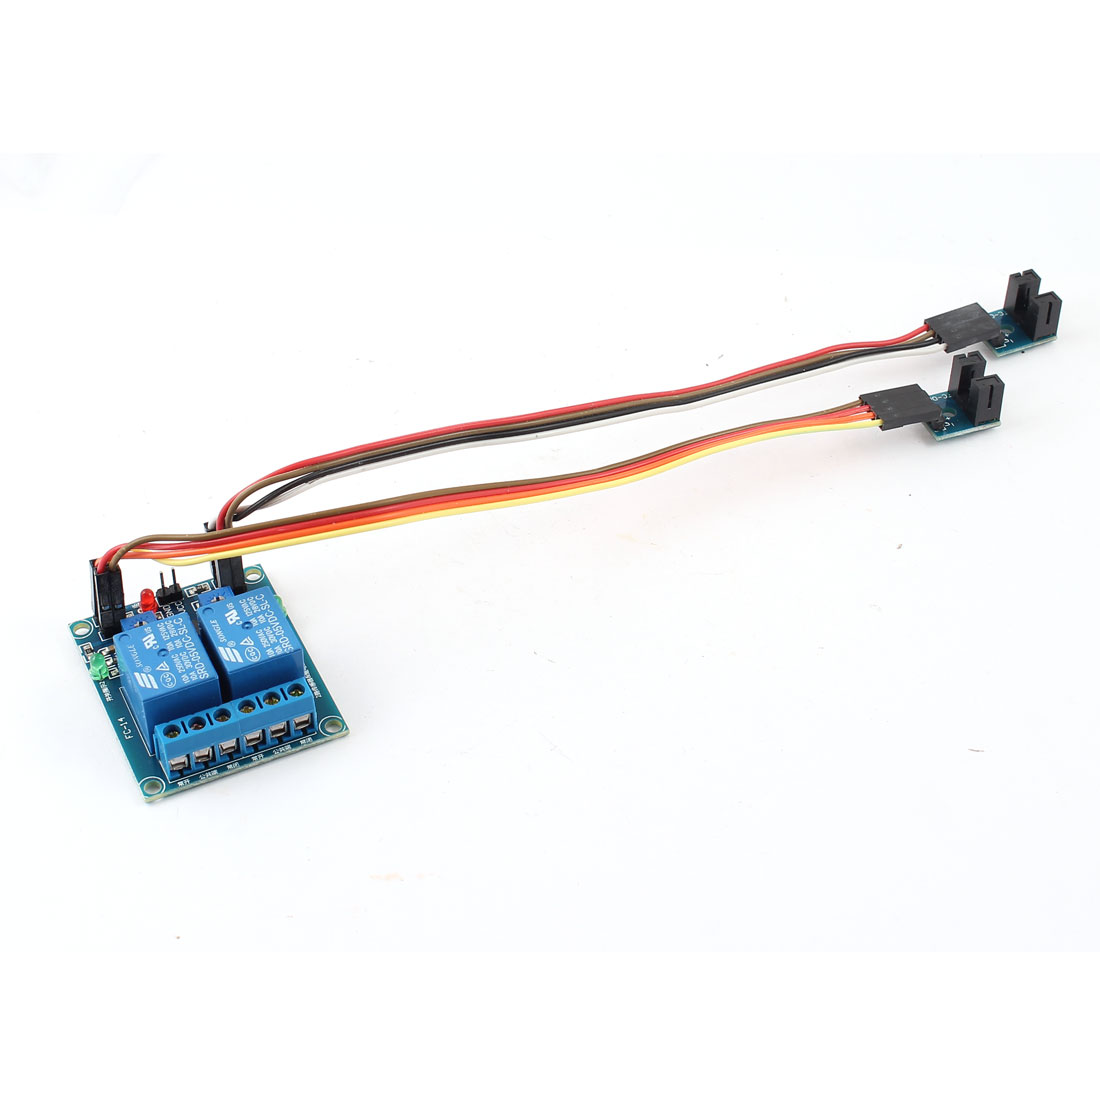 2-Channel Speed Detect Velocity Optical Detection Sensor Module DC 5V